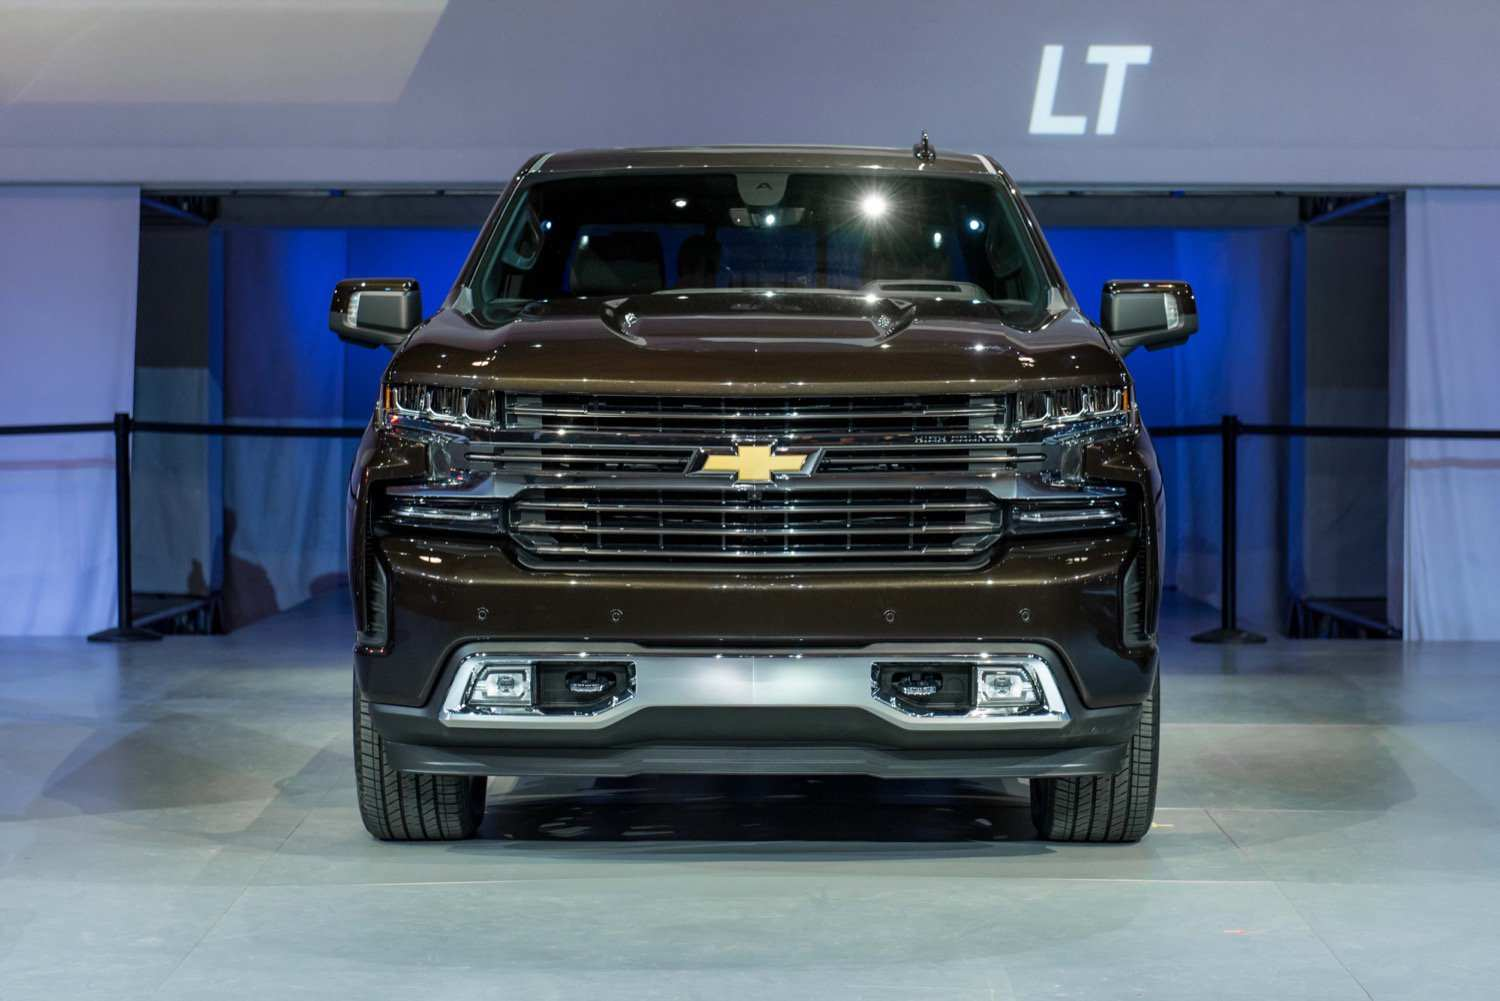 94 Gallery of 2019 Chevrolet High Country Price Redesign and Concept for 2019 Chevrolet High Country Price